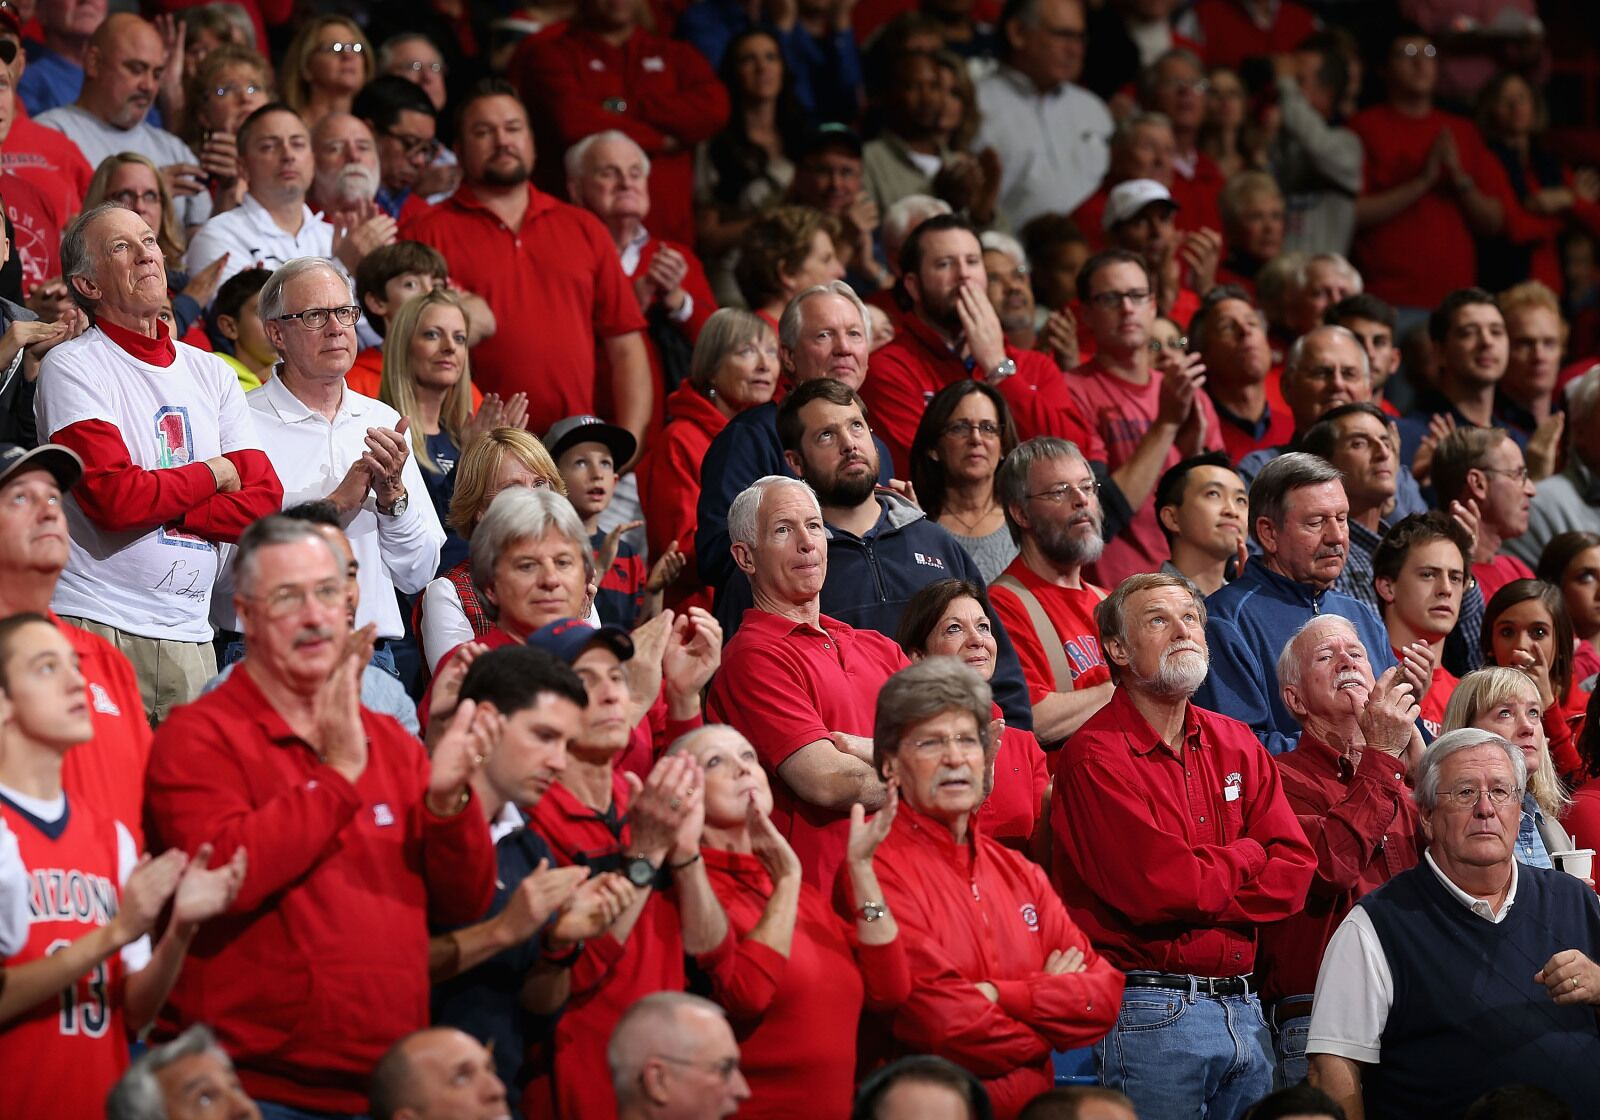 Arizona Basketball: Devin Askew picks Kentucky, should fans be worried?